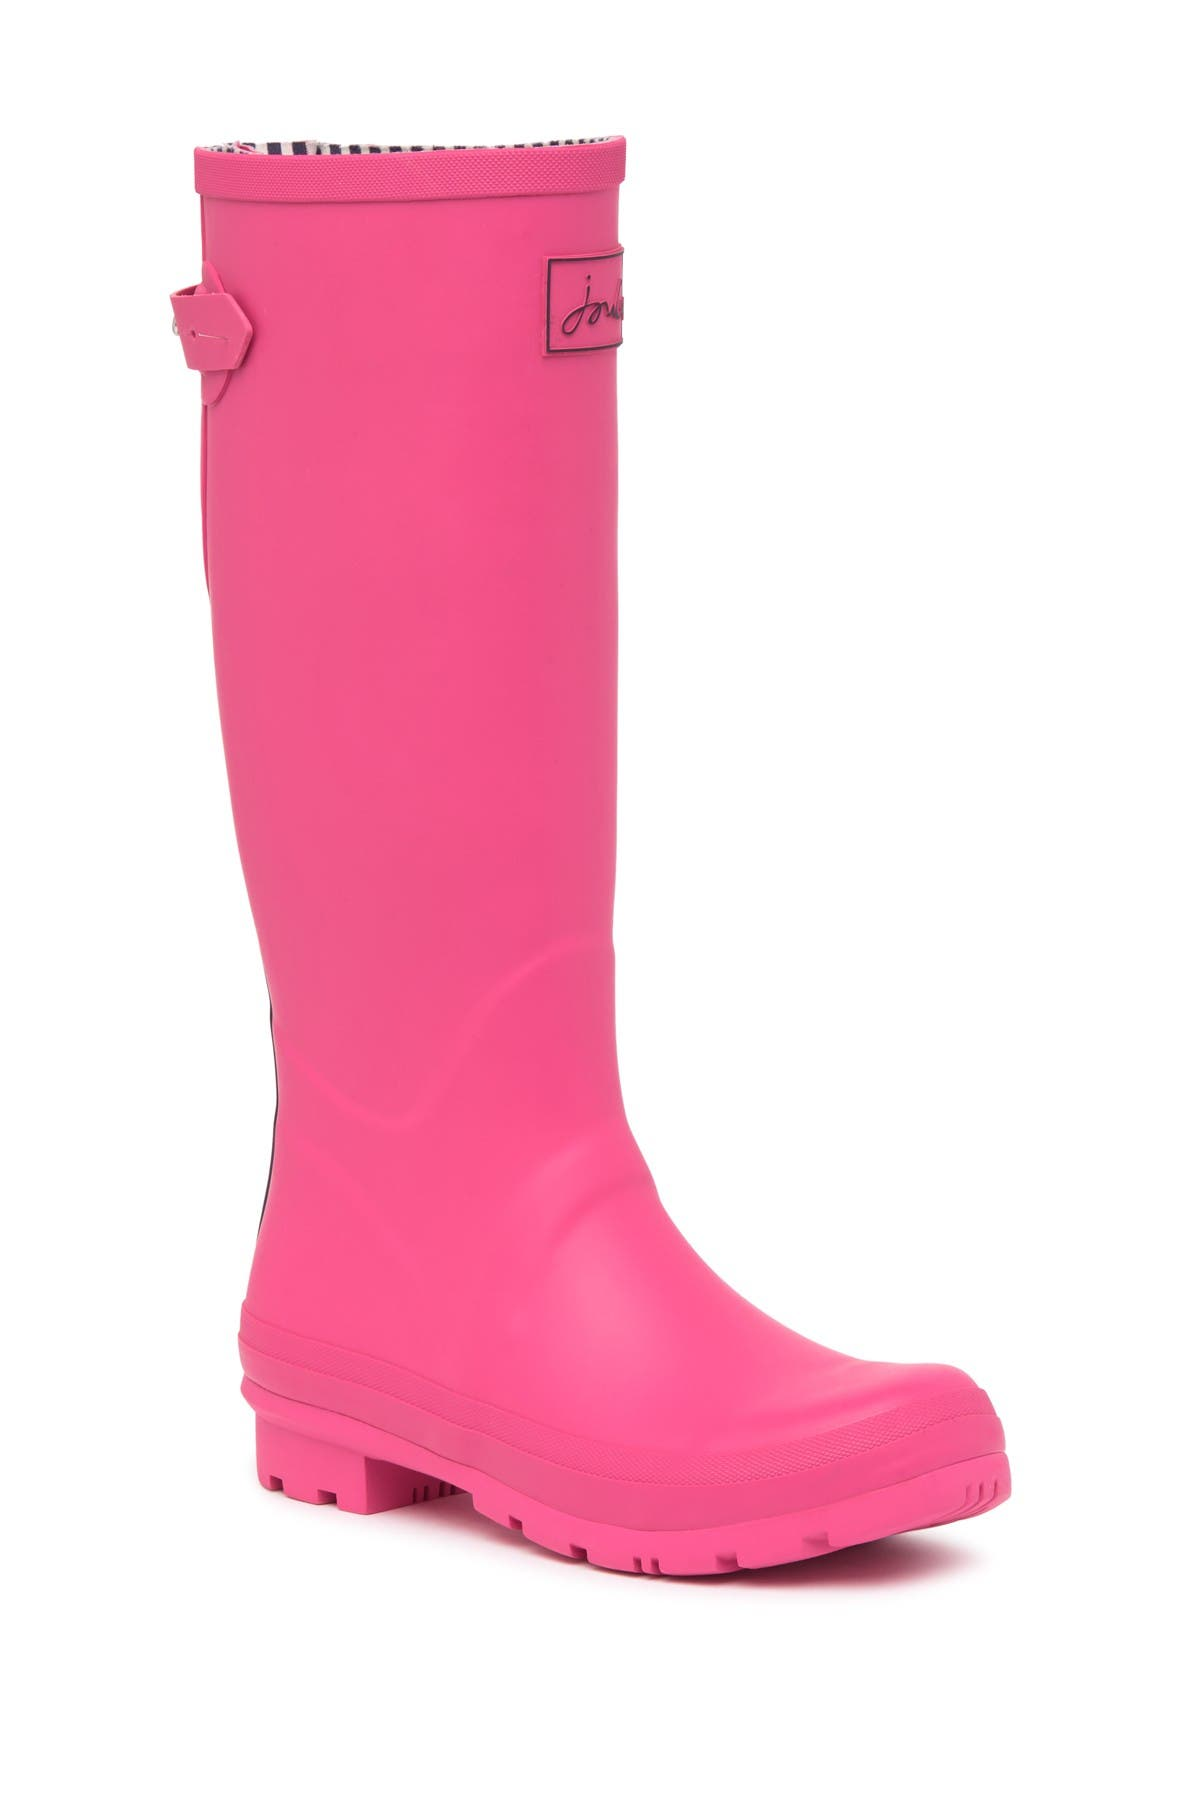 Image of Joules Field Rain Boot